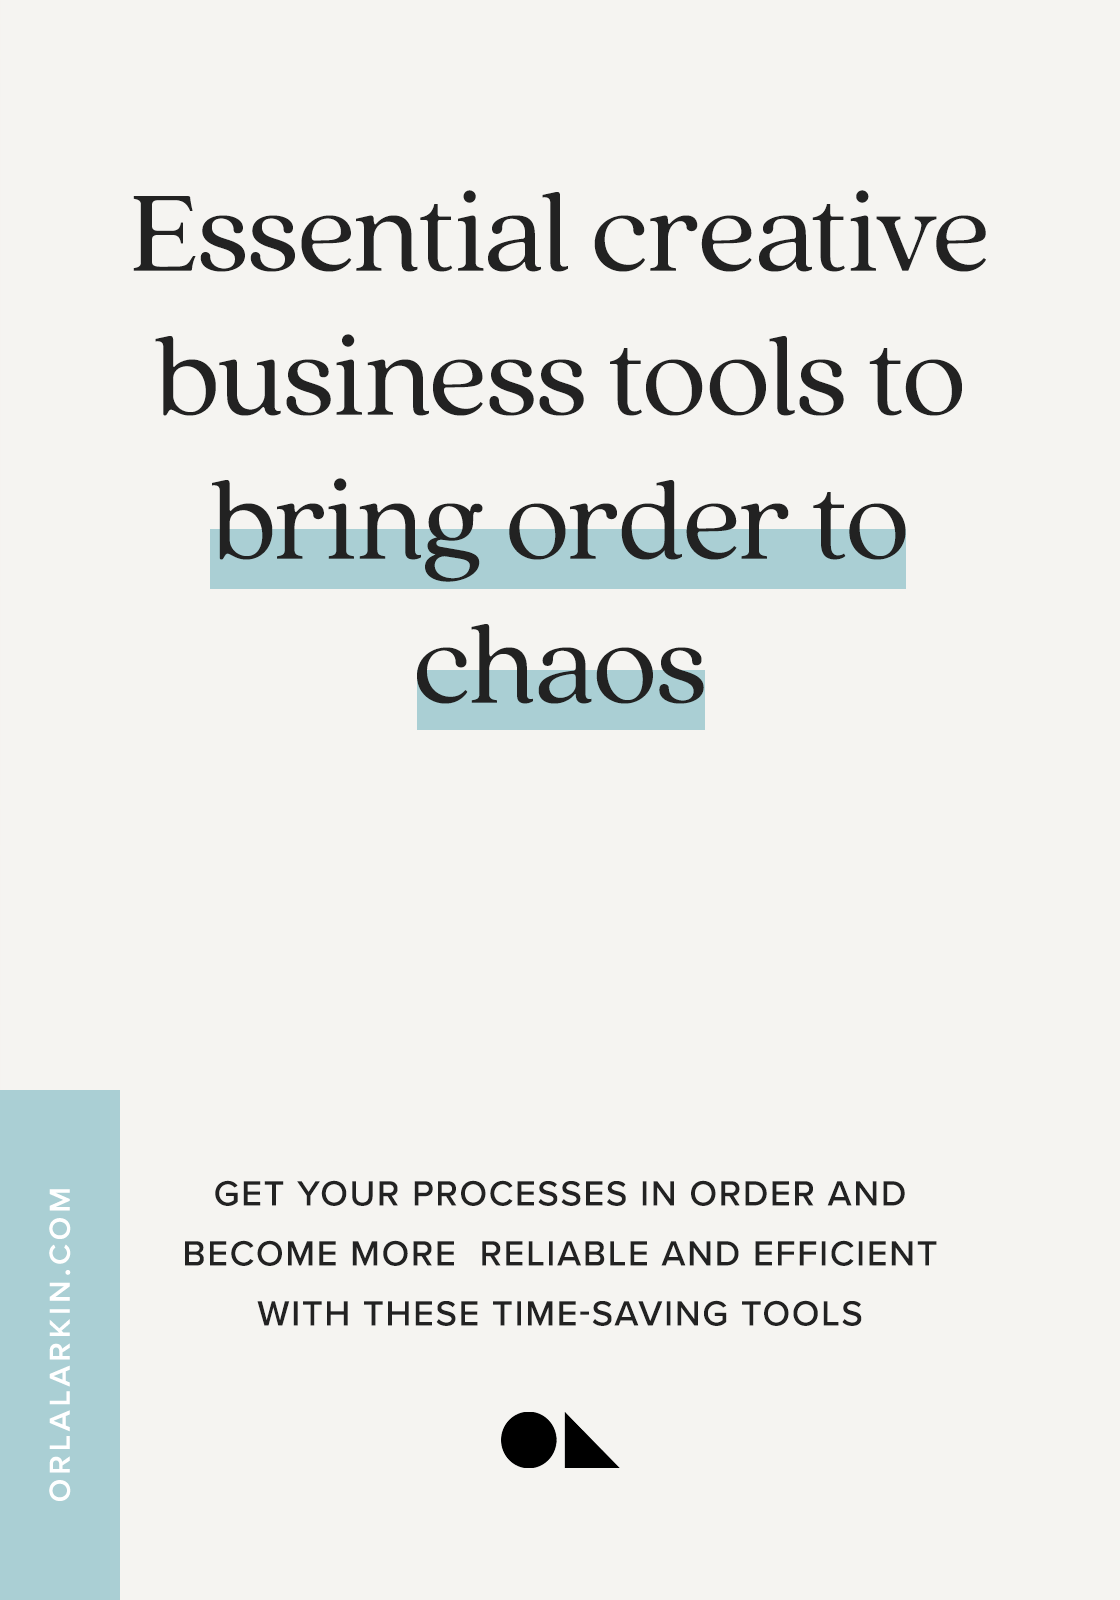 Essential creative business tools to bring order to chaos